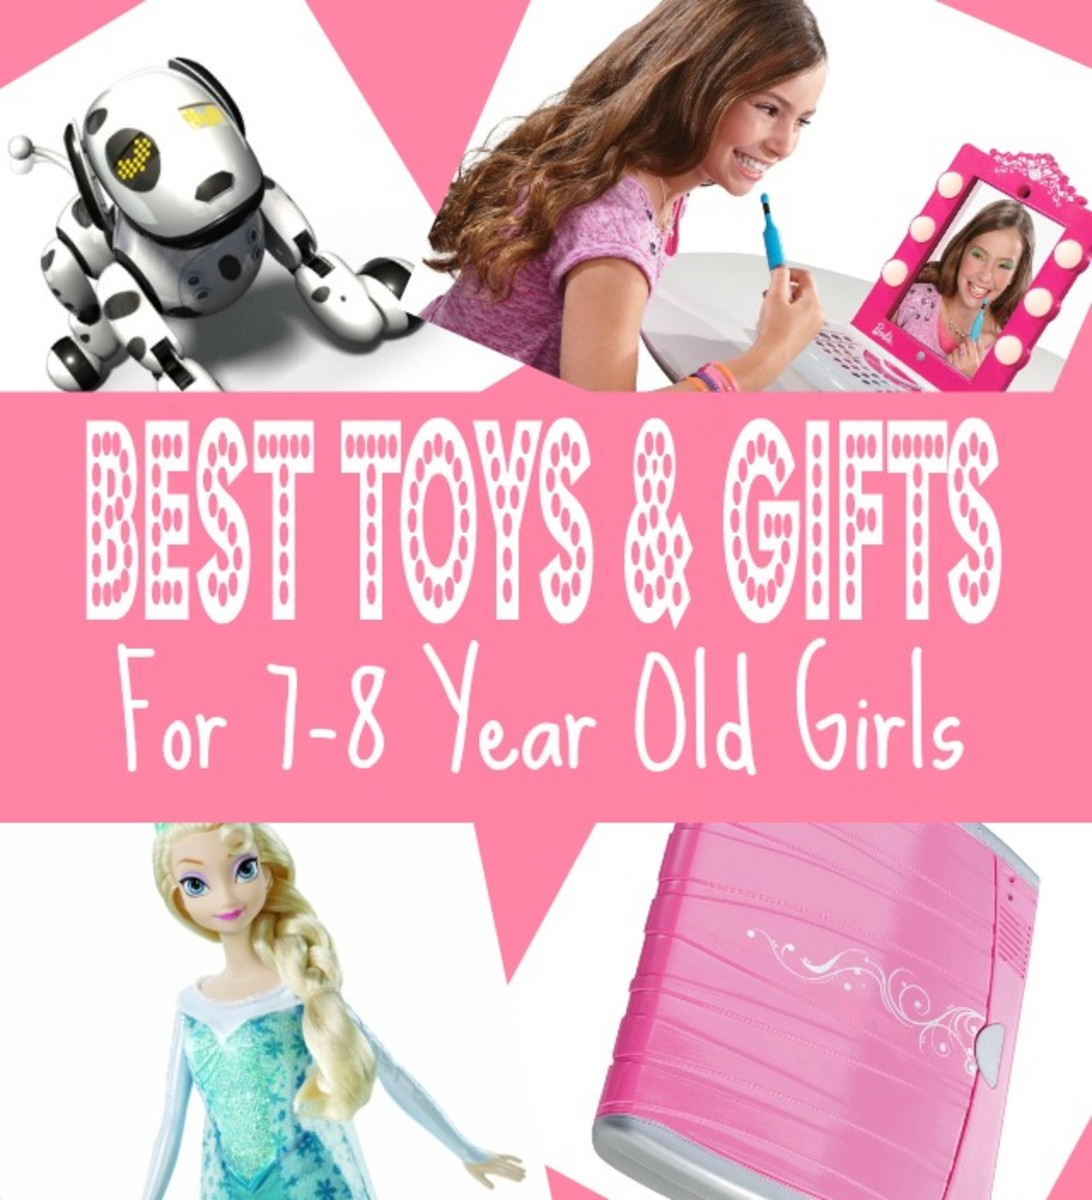 Best Toys Gifts For 6 Year Old Girls : Best gifts top toys for year old girls in